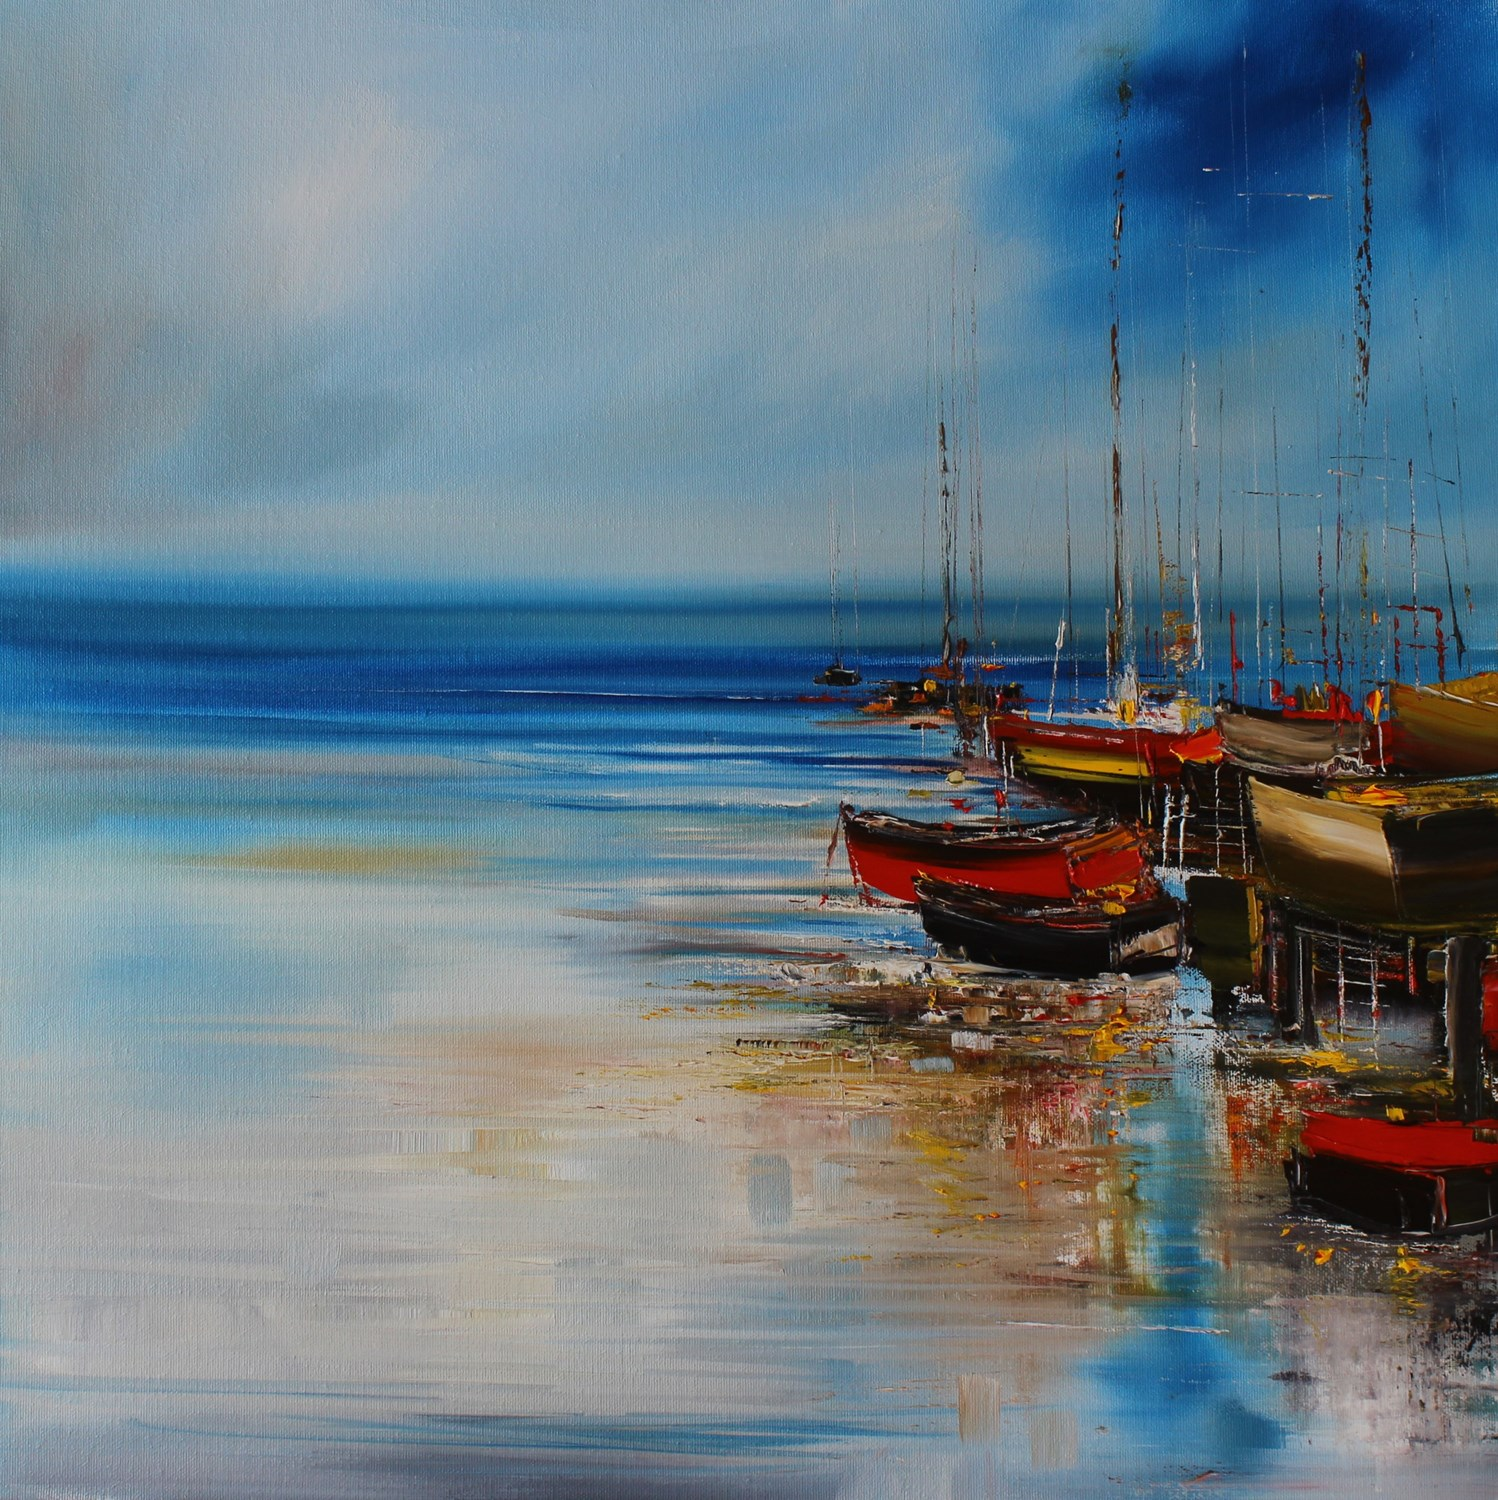 'All Ashore' by artist Rosanne Barr